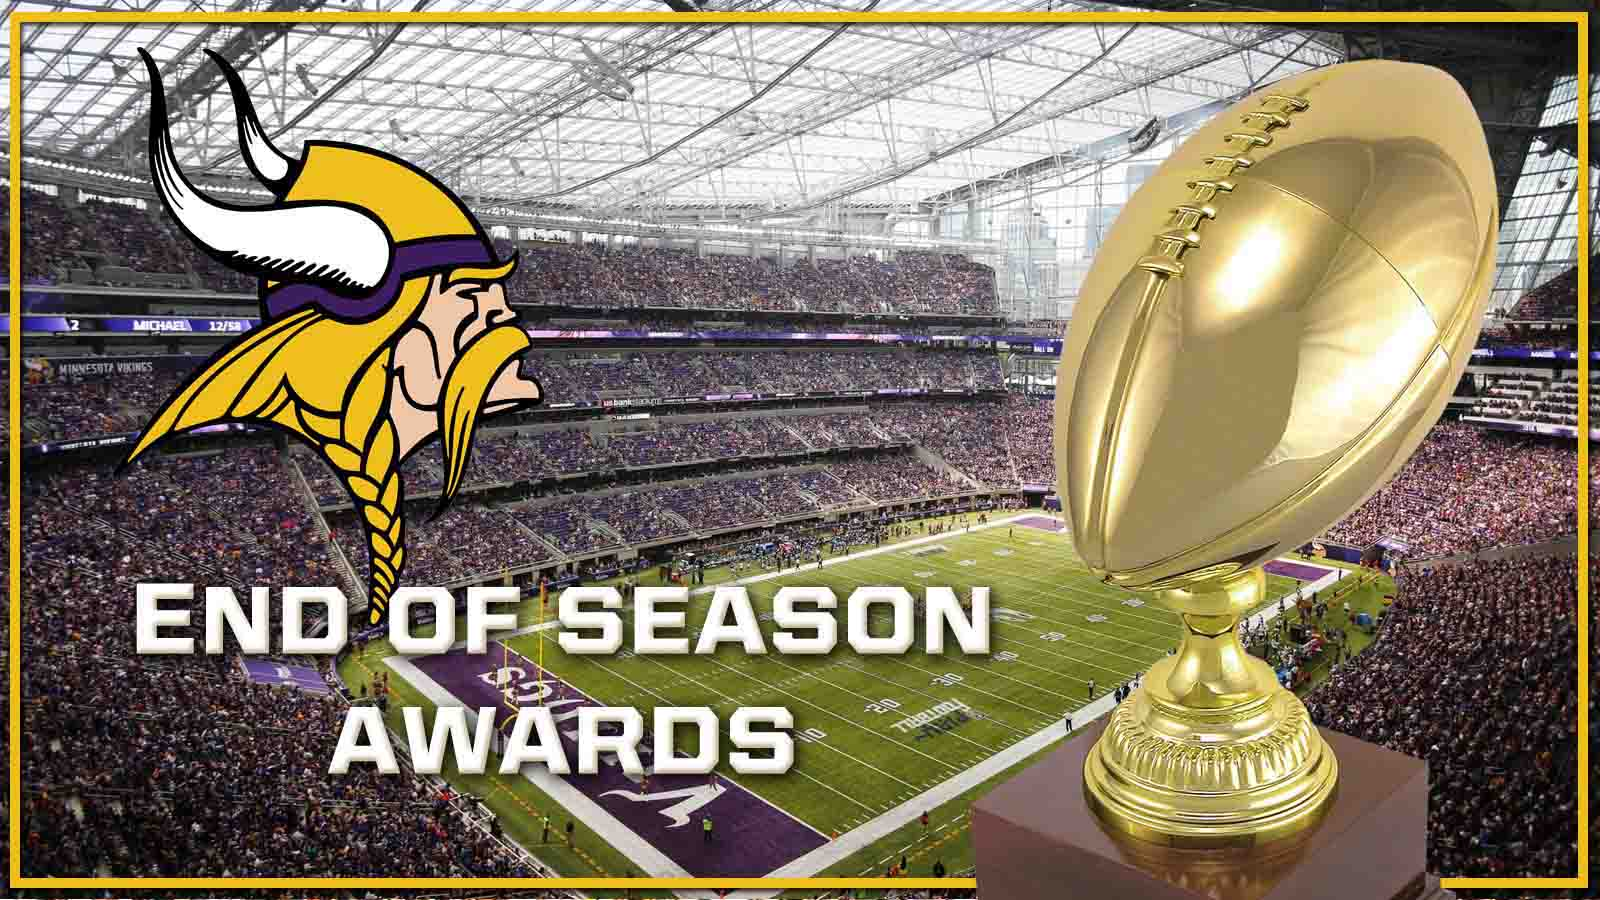 Vikings-End-Of-Season-Awards-Graphic